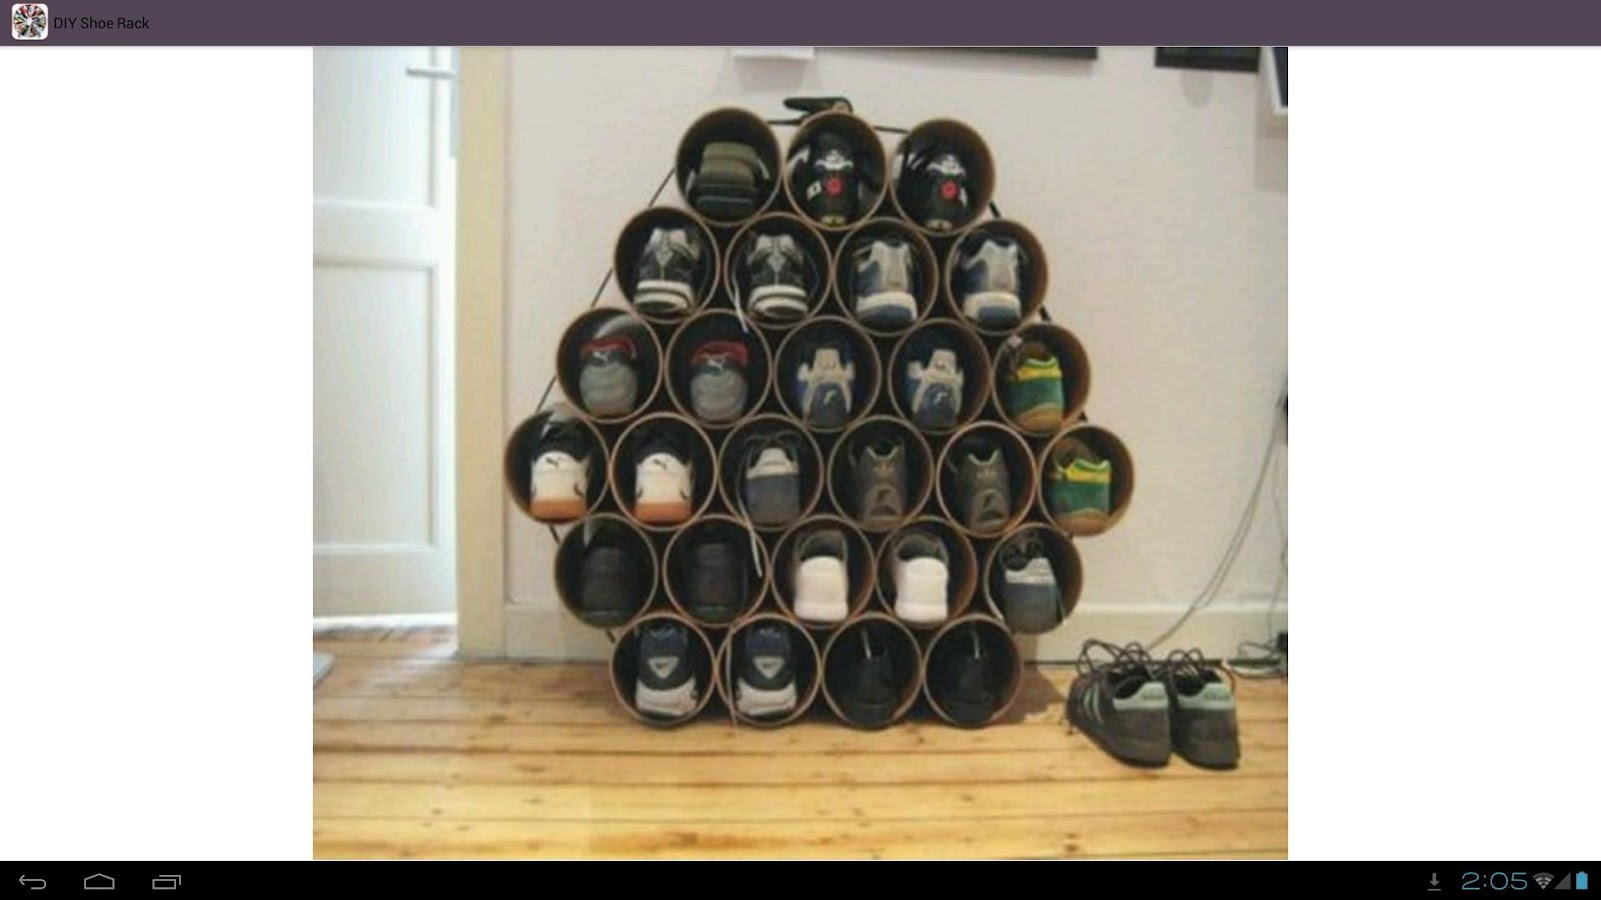 Diy Shoe Rack Diy Shoe Rack Ideas Android Apps On Google Play